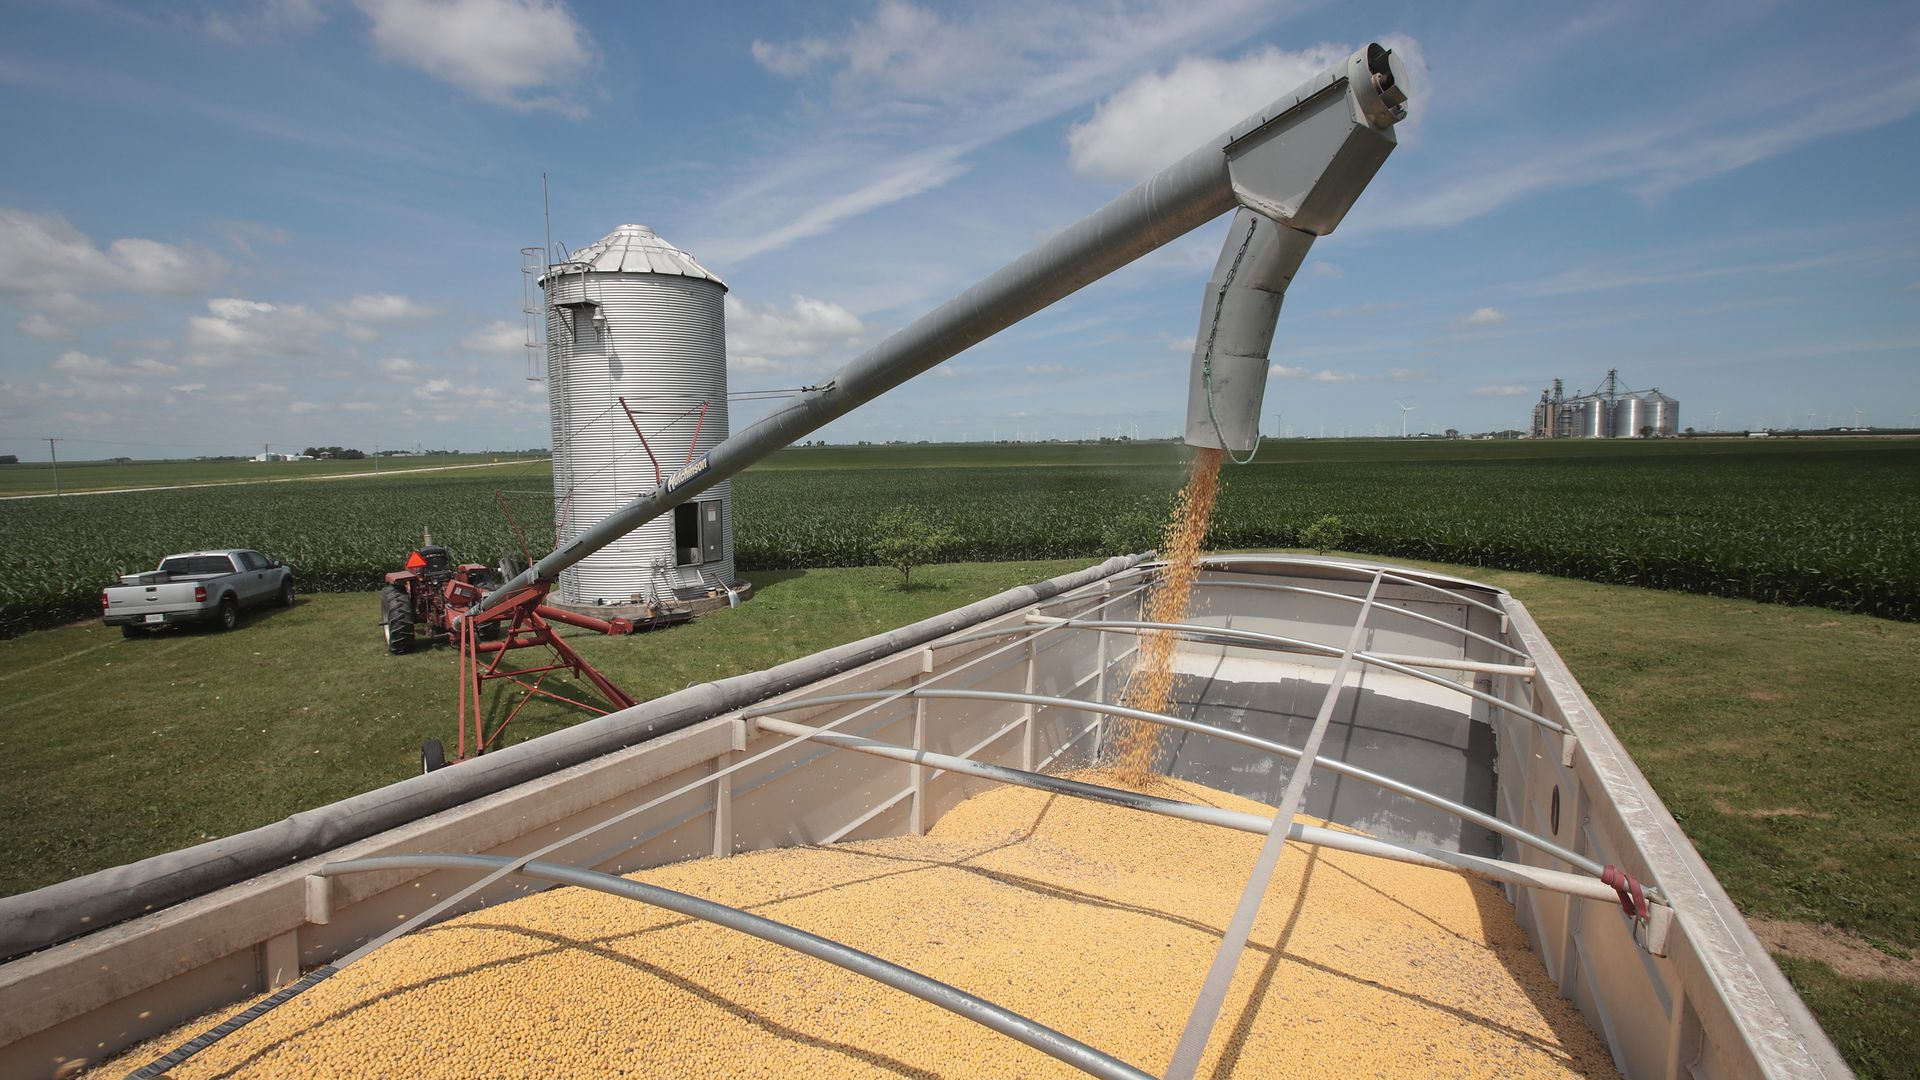 Soybeans in a truck